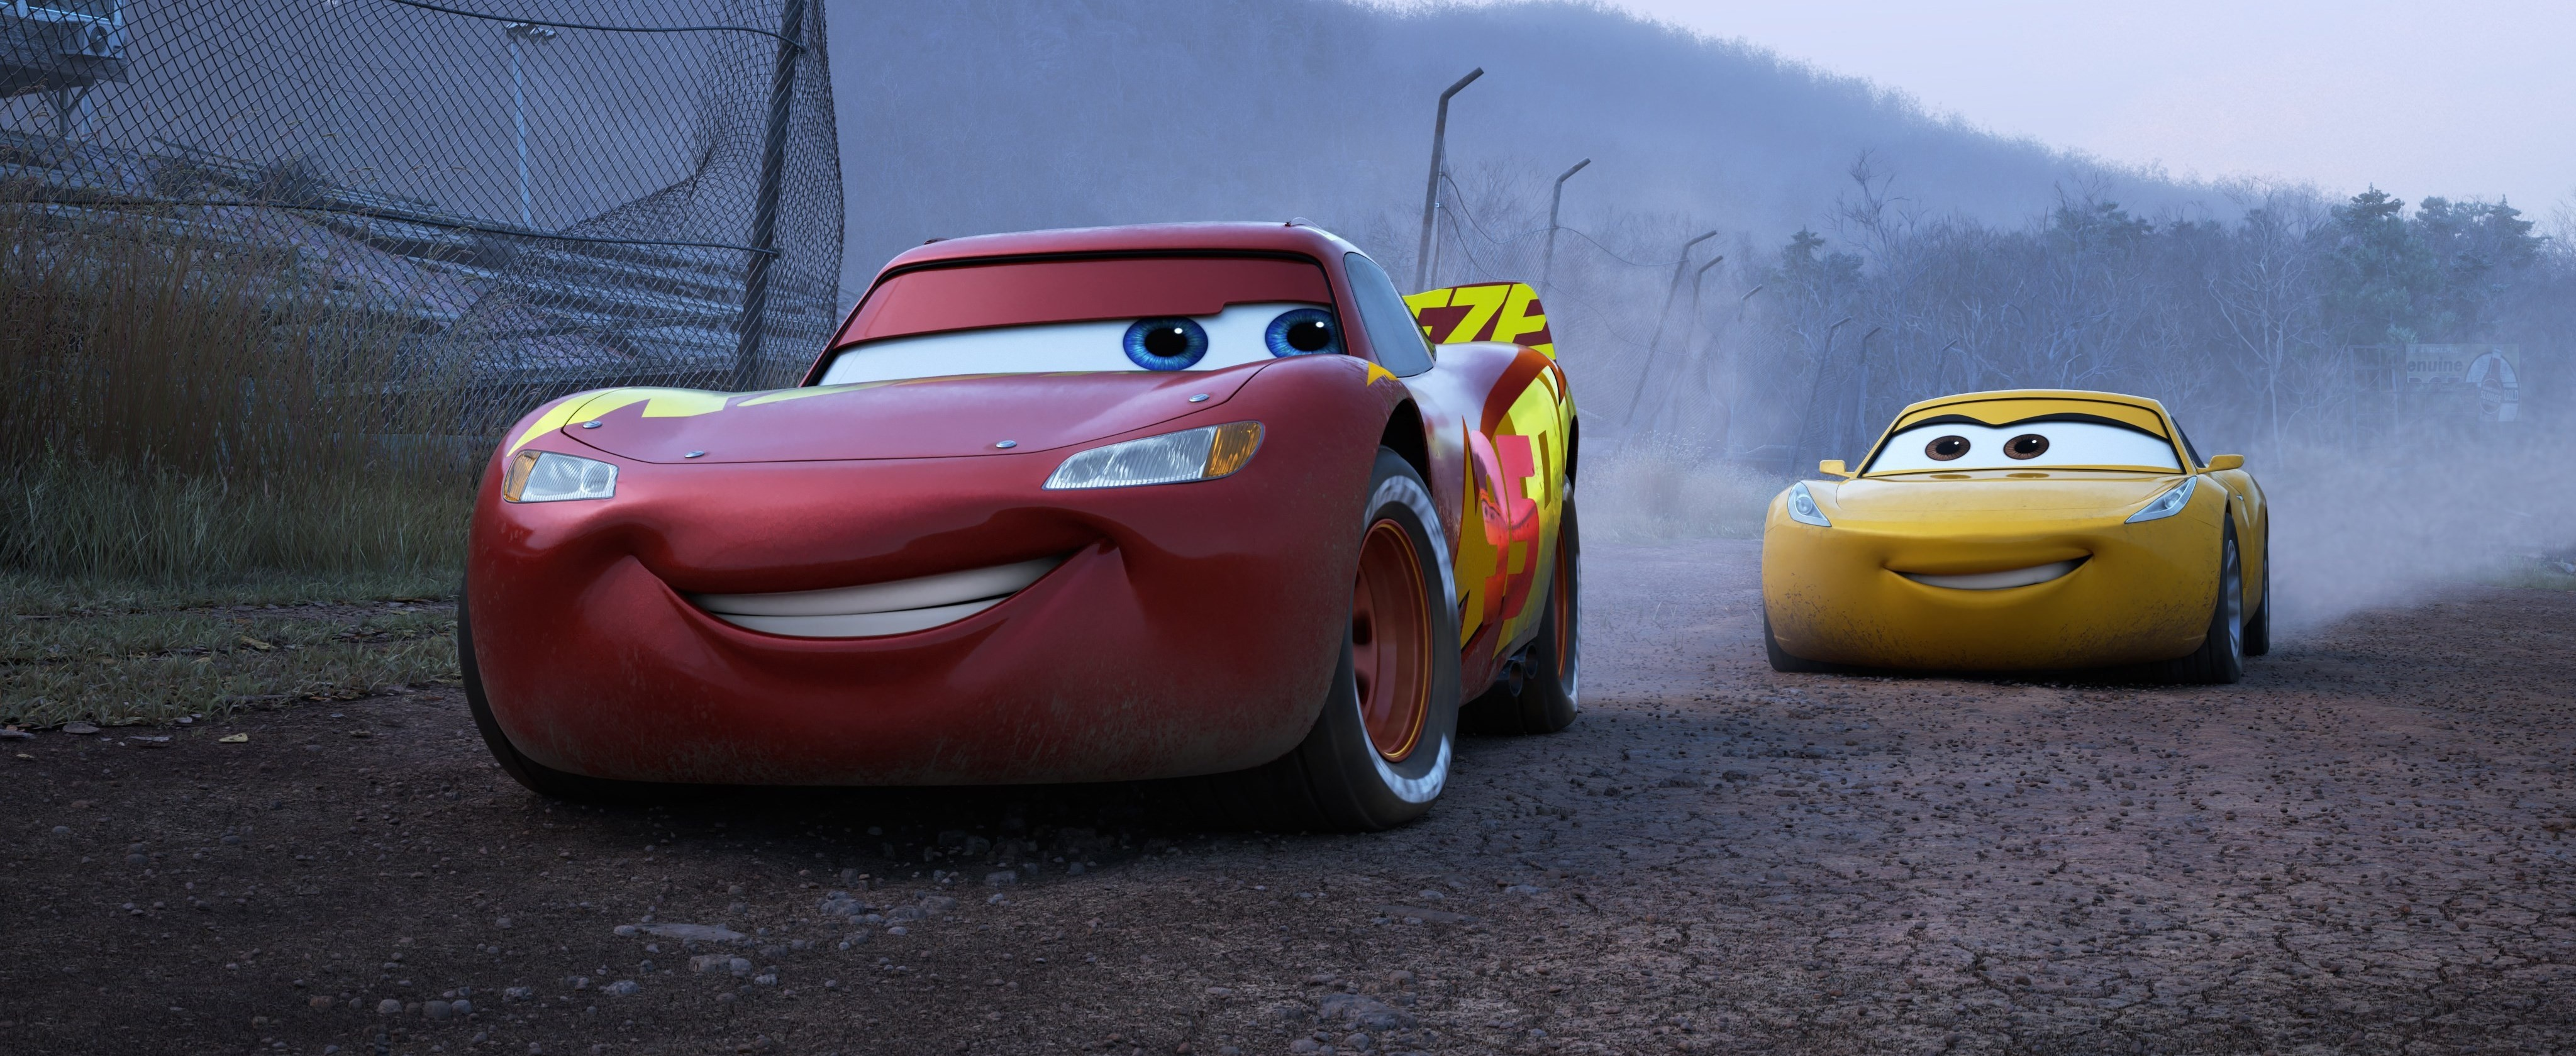 b0acdeb3f3209c Cruz Ramirez Lightning McQueen · HD Wallpaper